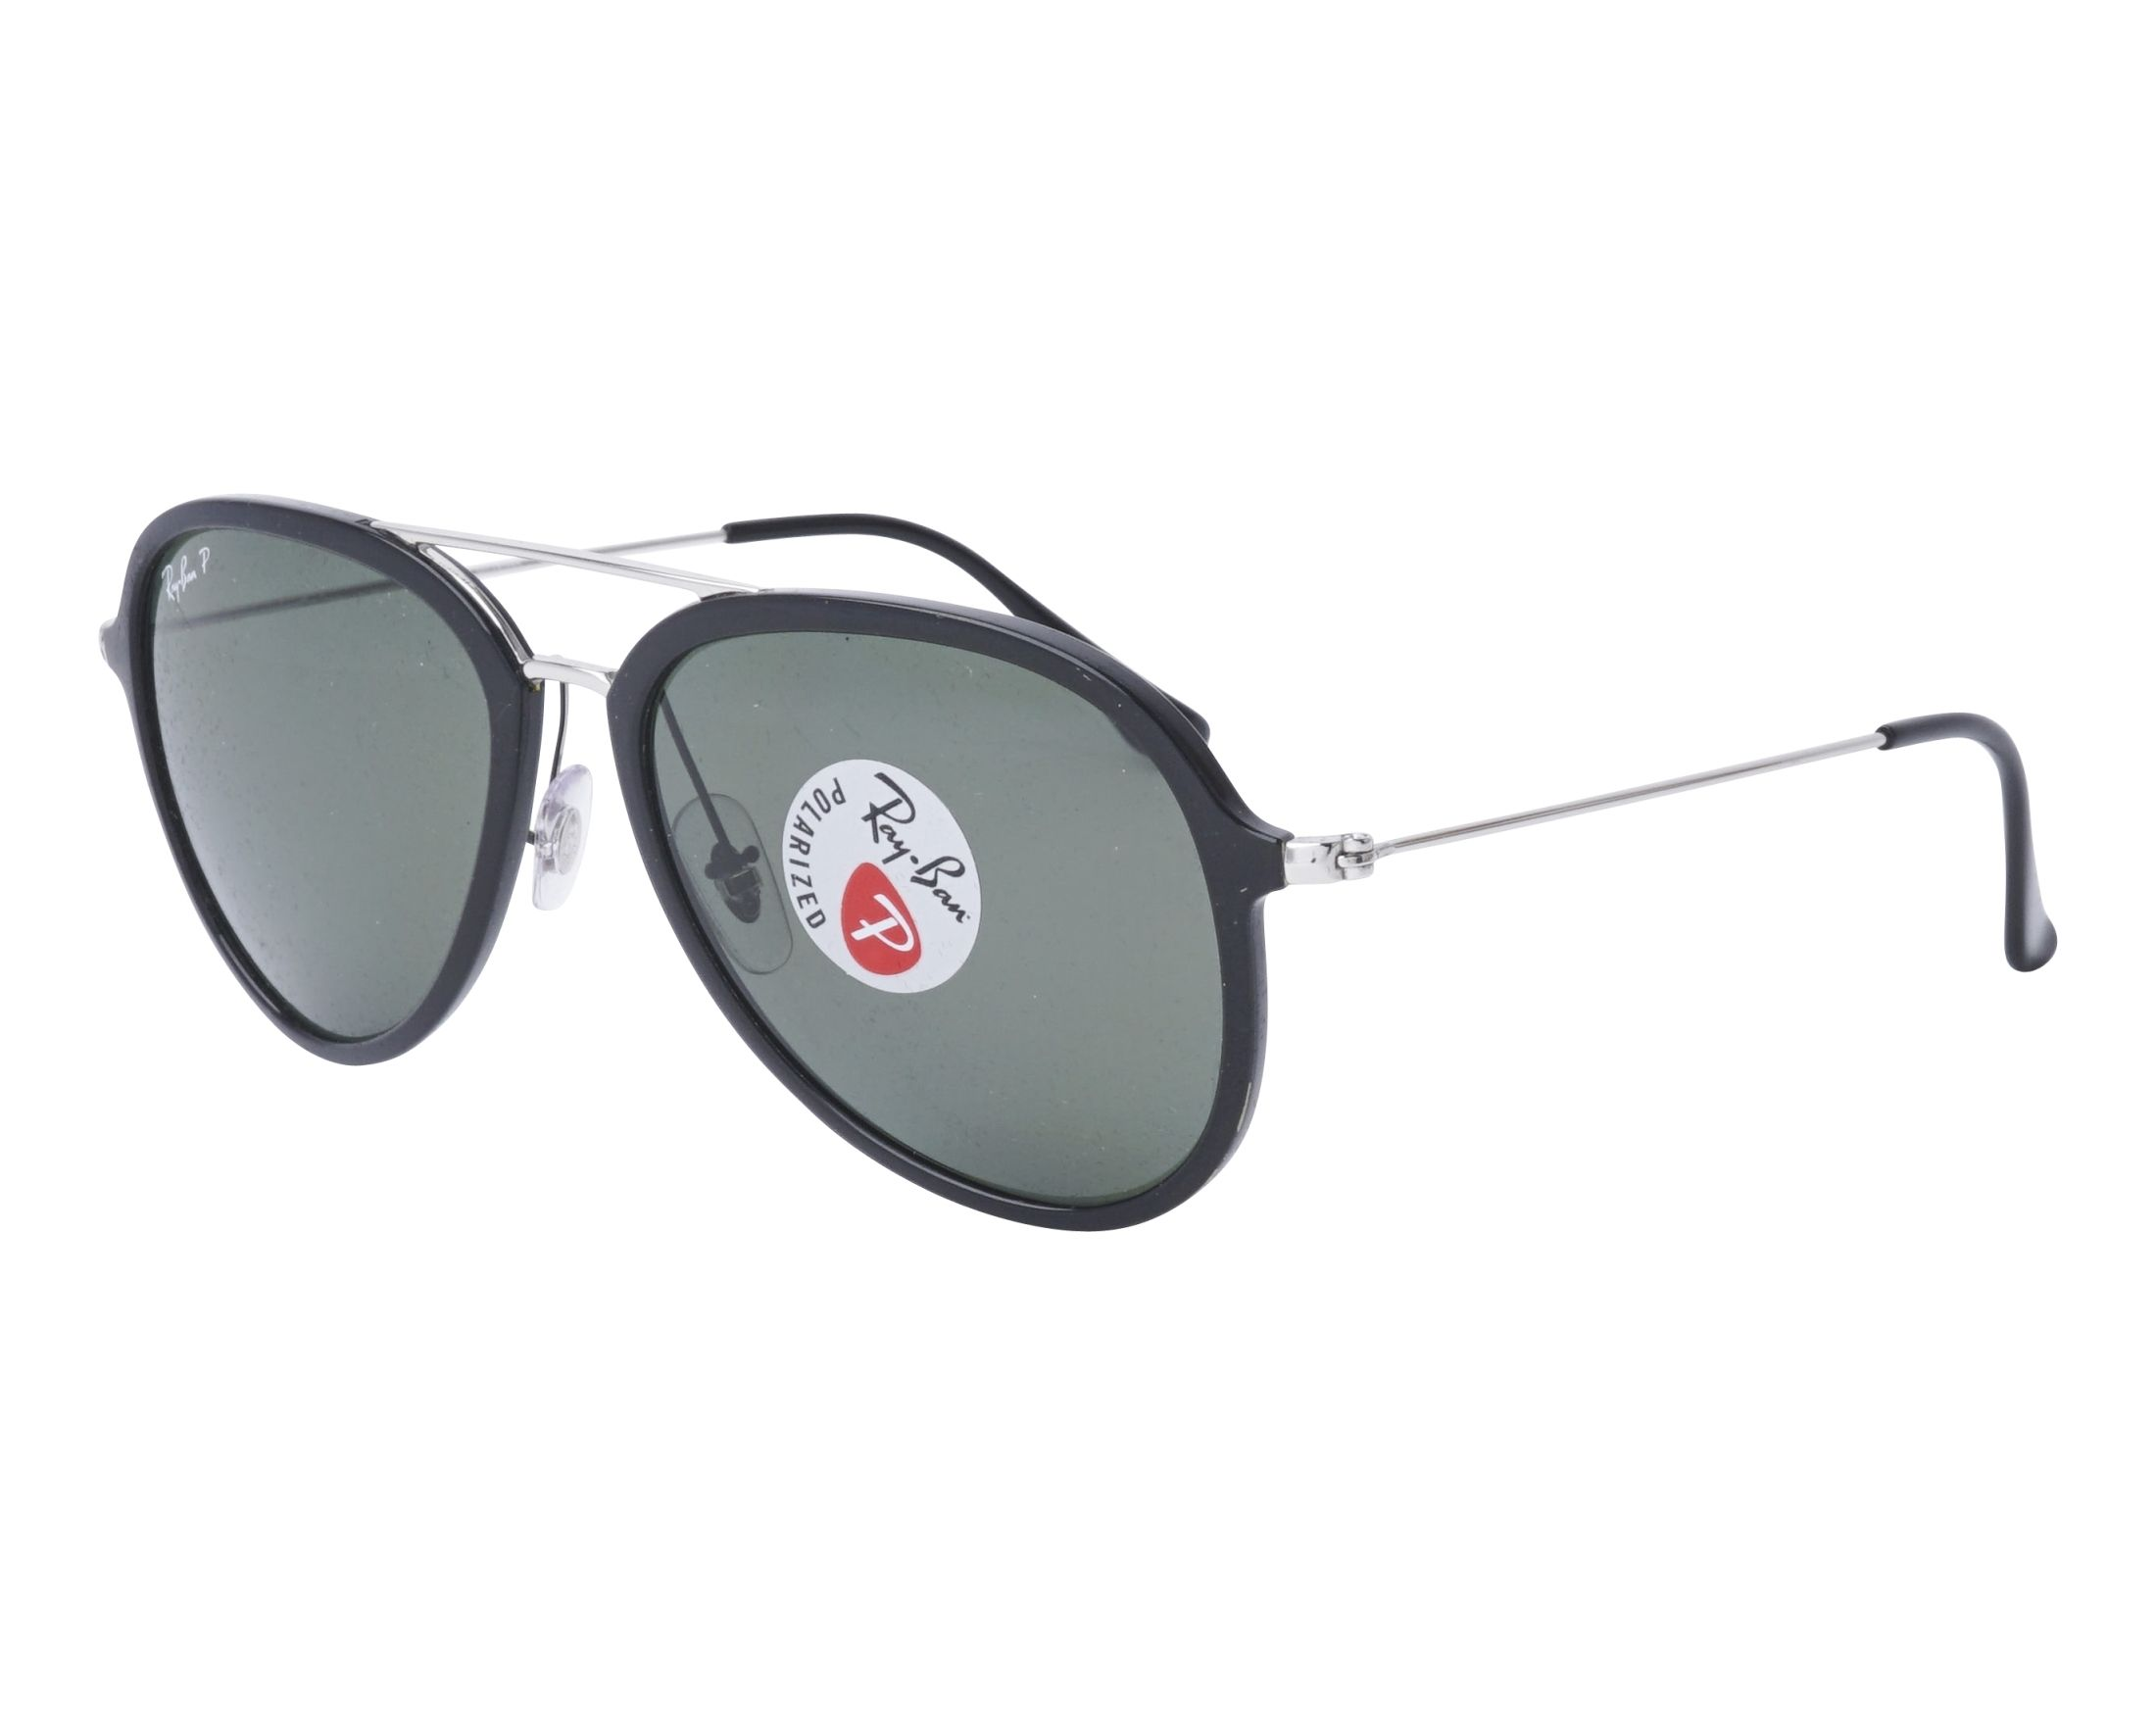 Sunglasses Ray-Ban RB-4298 601 9A 57-17 Black Silver profile 79be0ae7a9